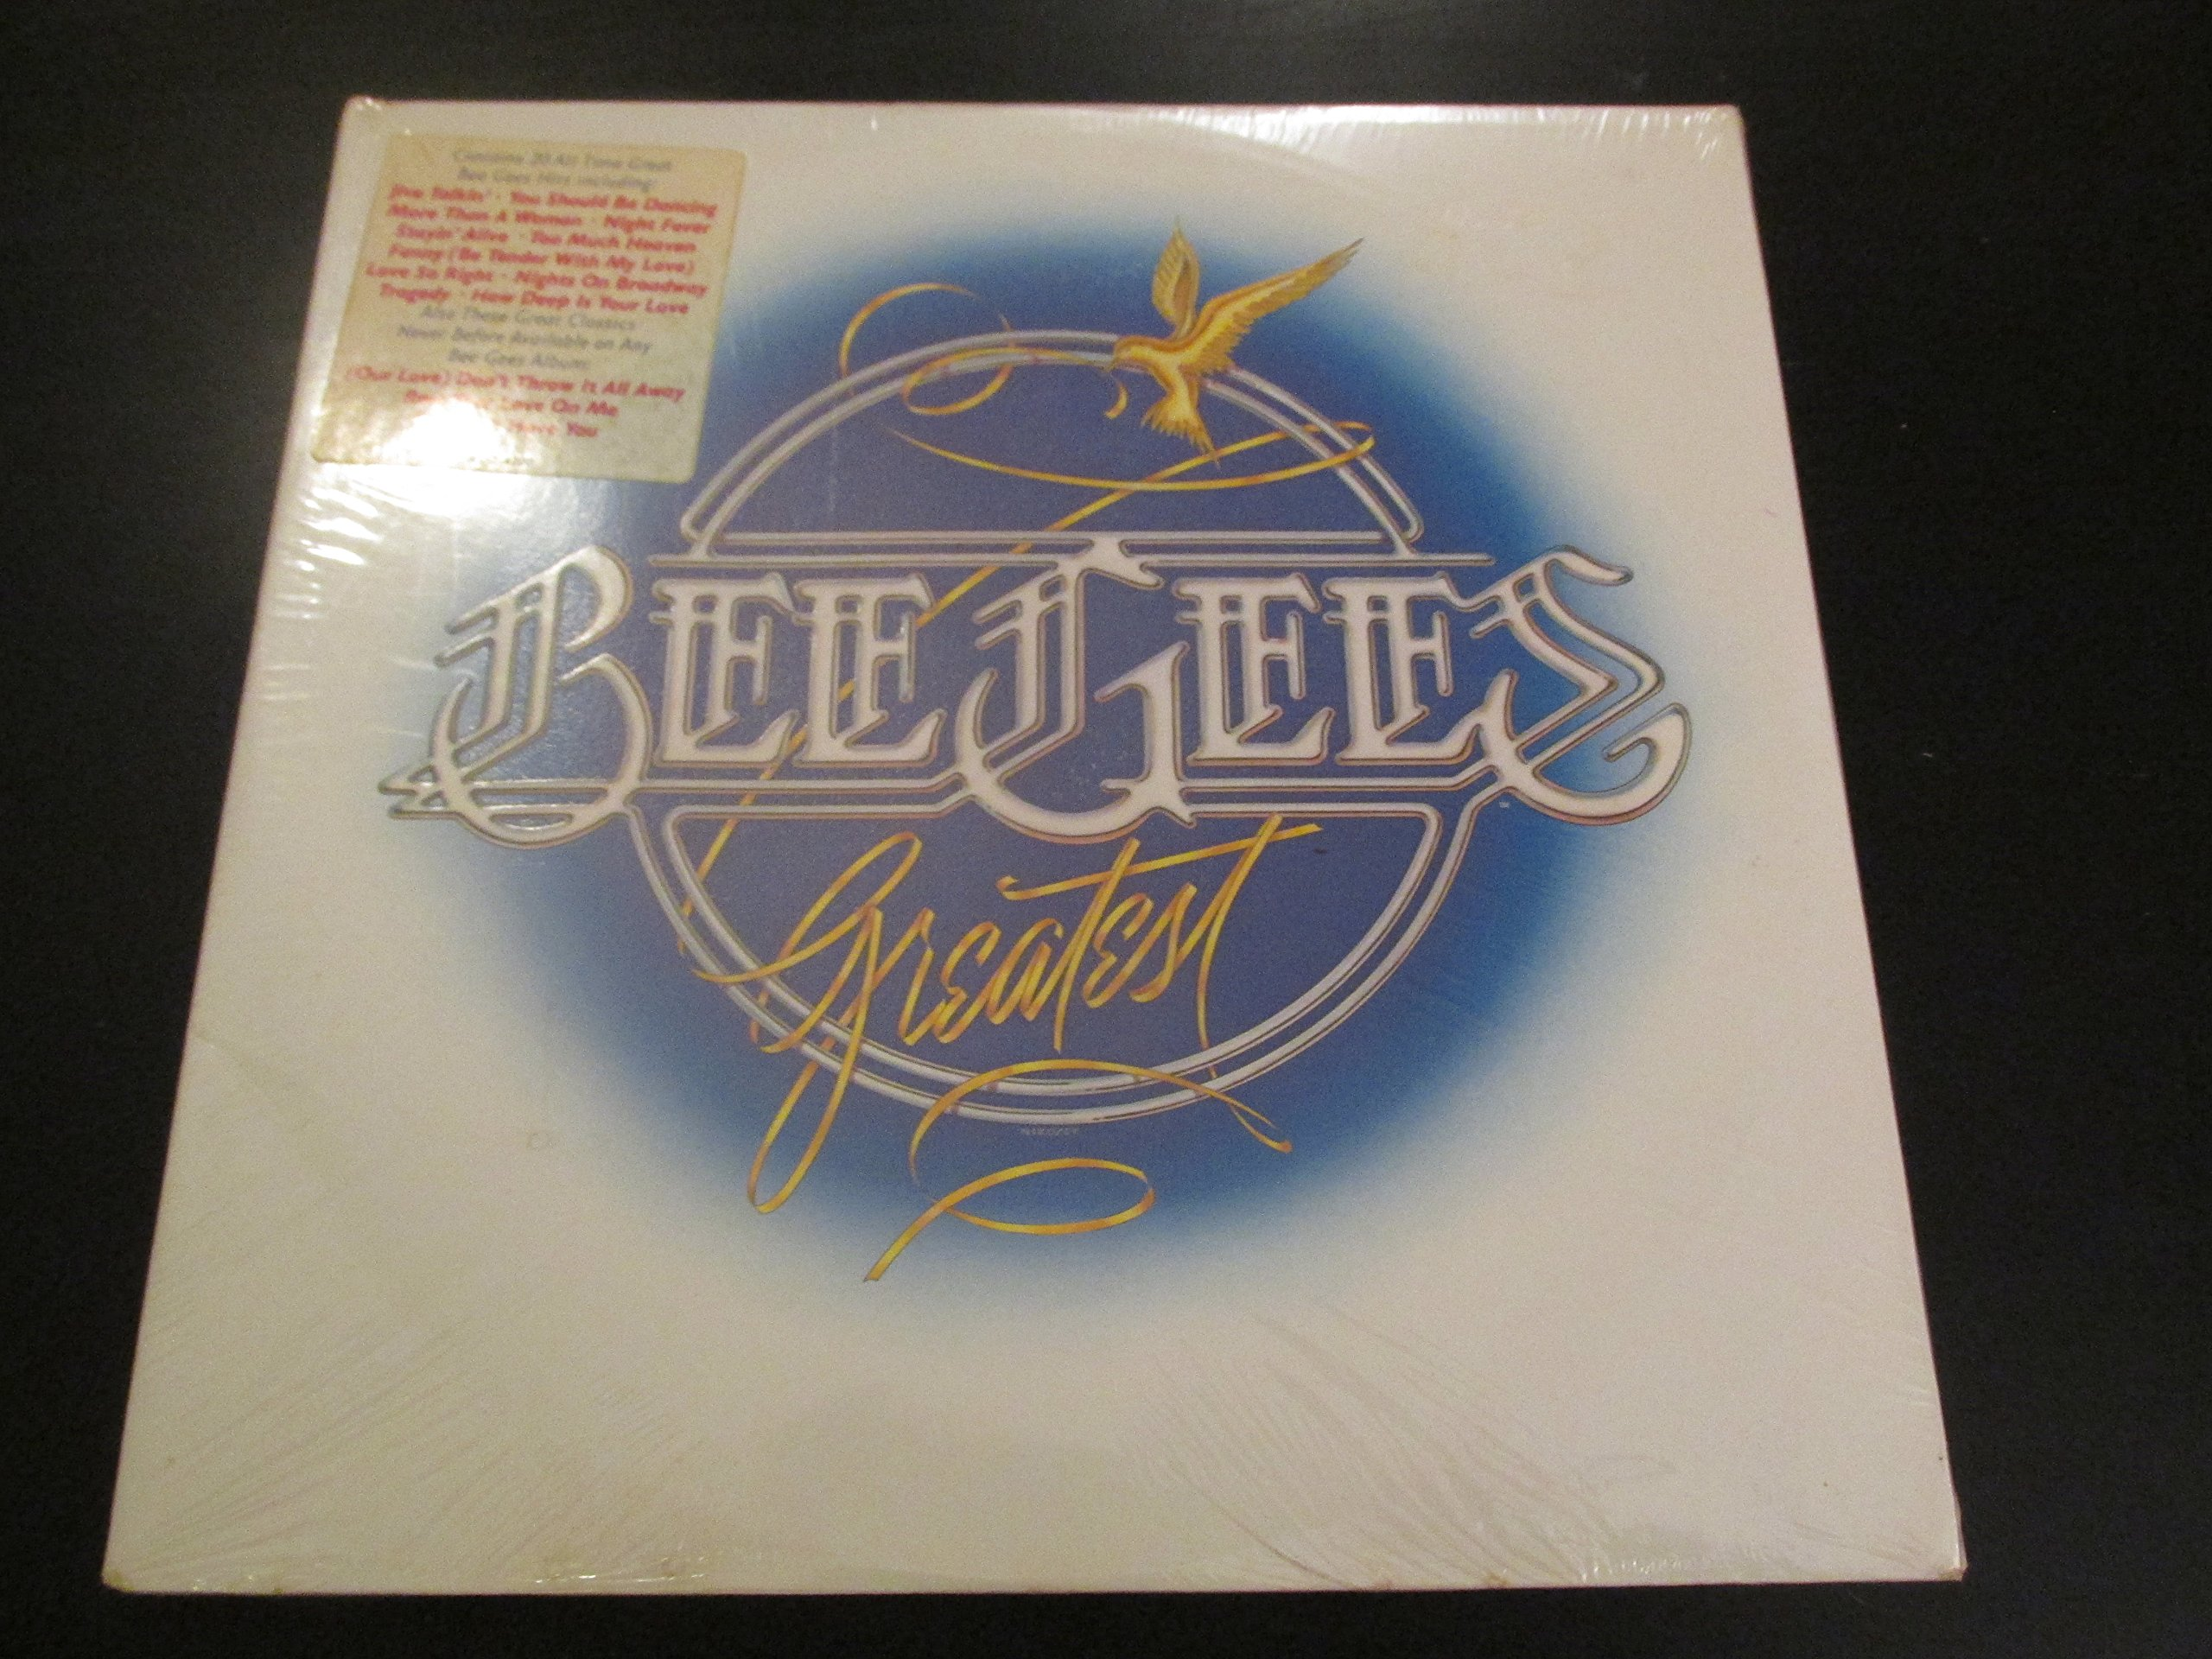 Bee Gees Greatest by RSO